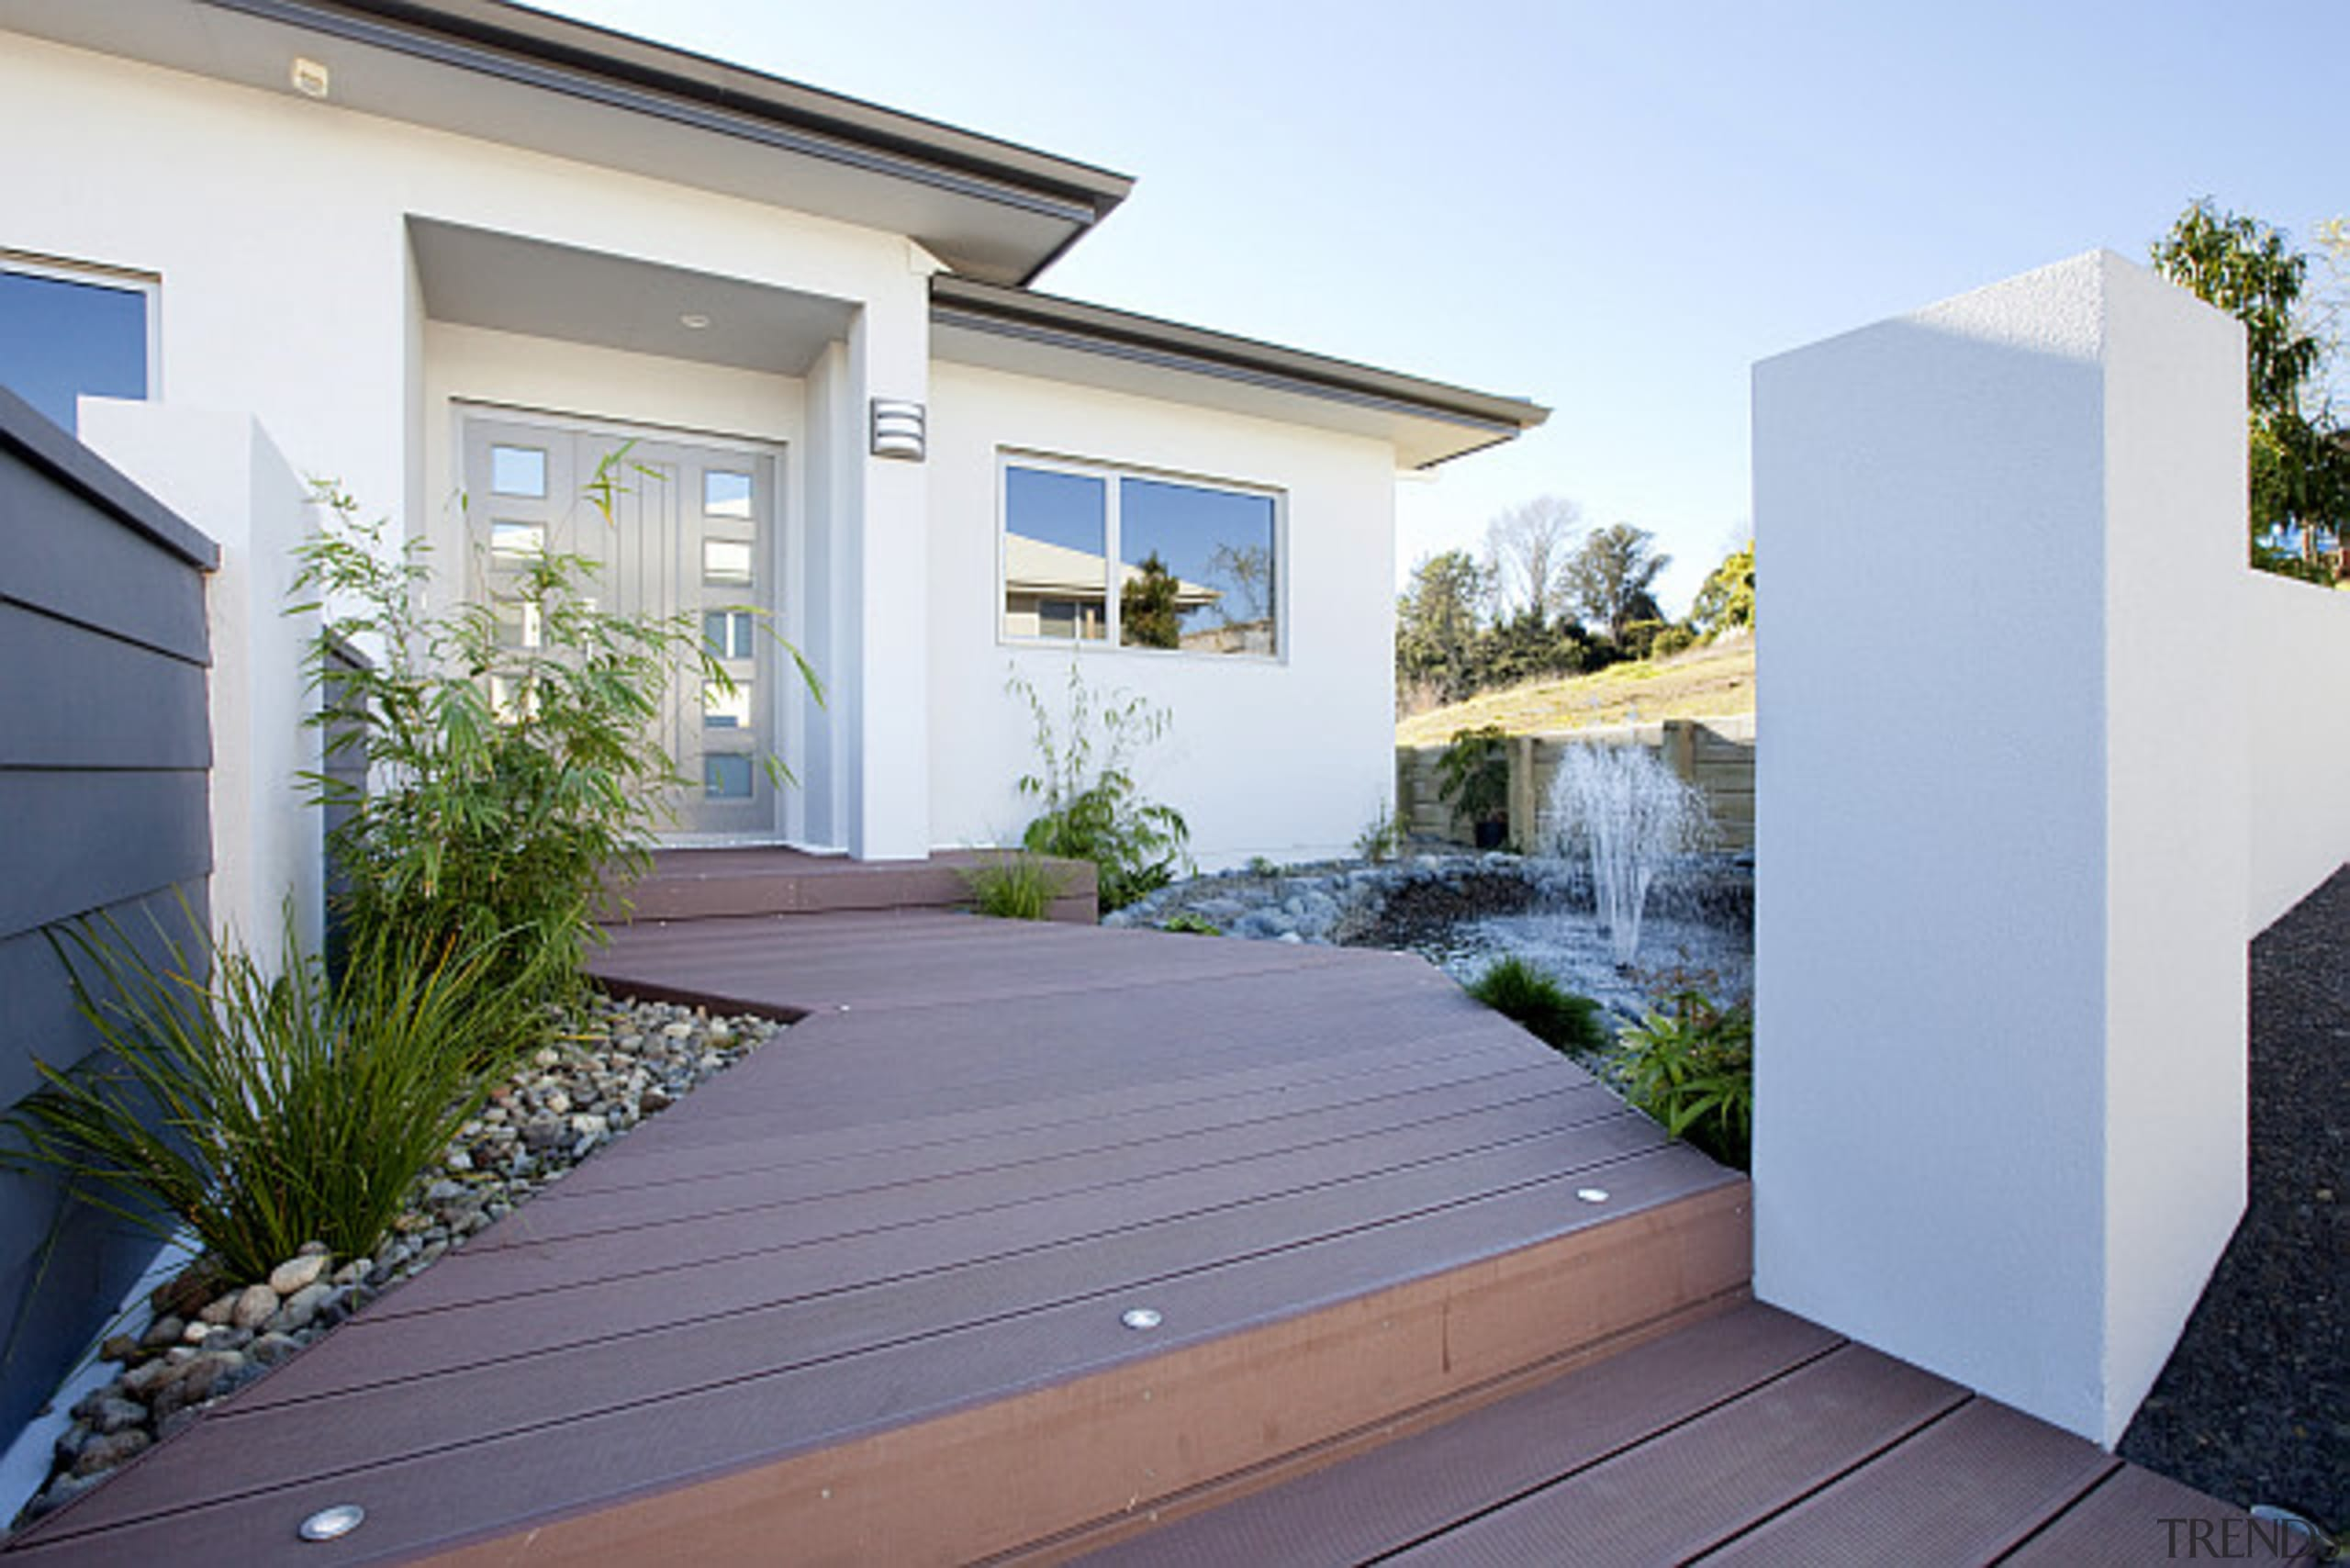 Built by Fowler Homes TaurangaFor more information, please architecture, backyard, courtyard, estate, facade, home, house, property, real estate, residential area, yard, white